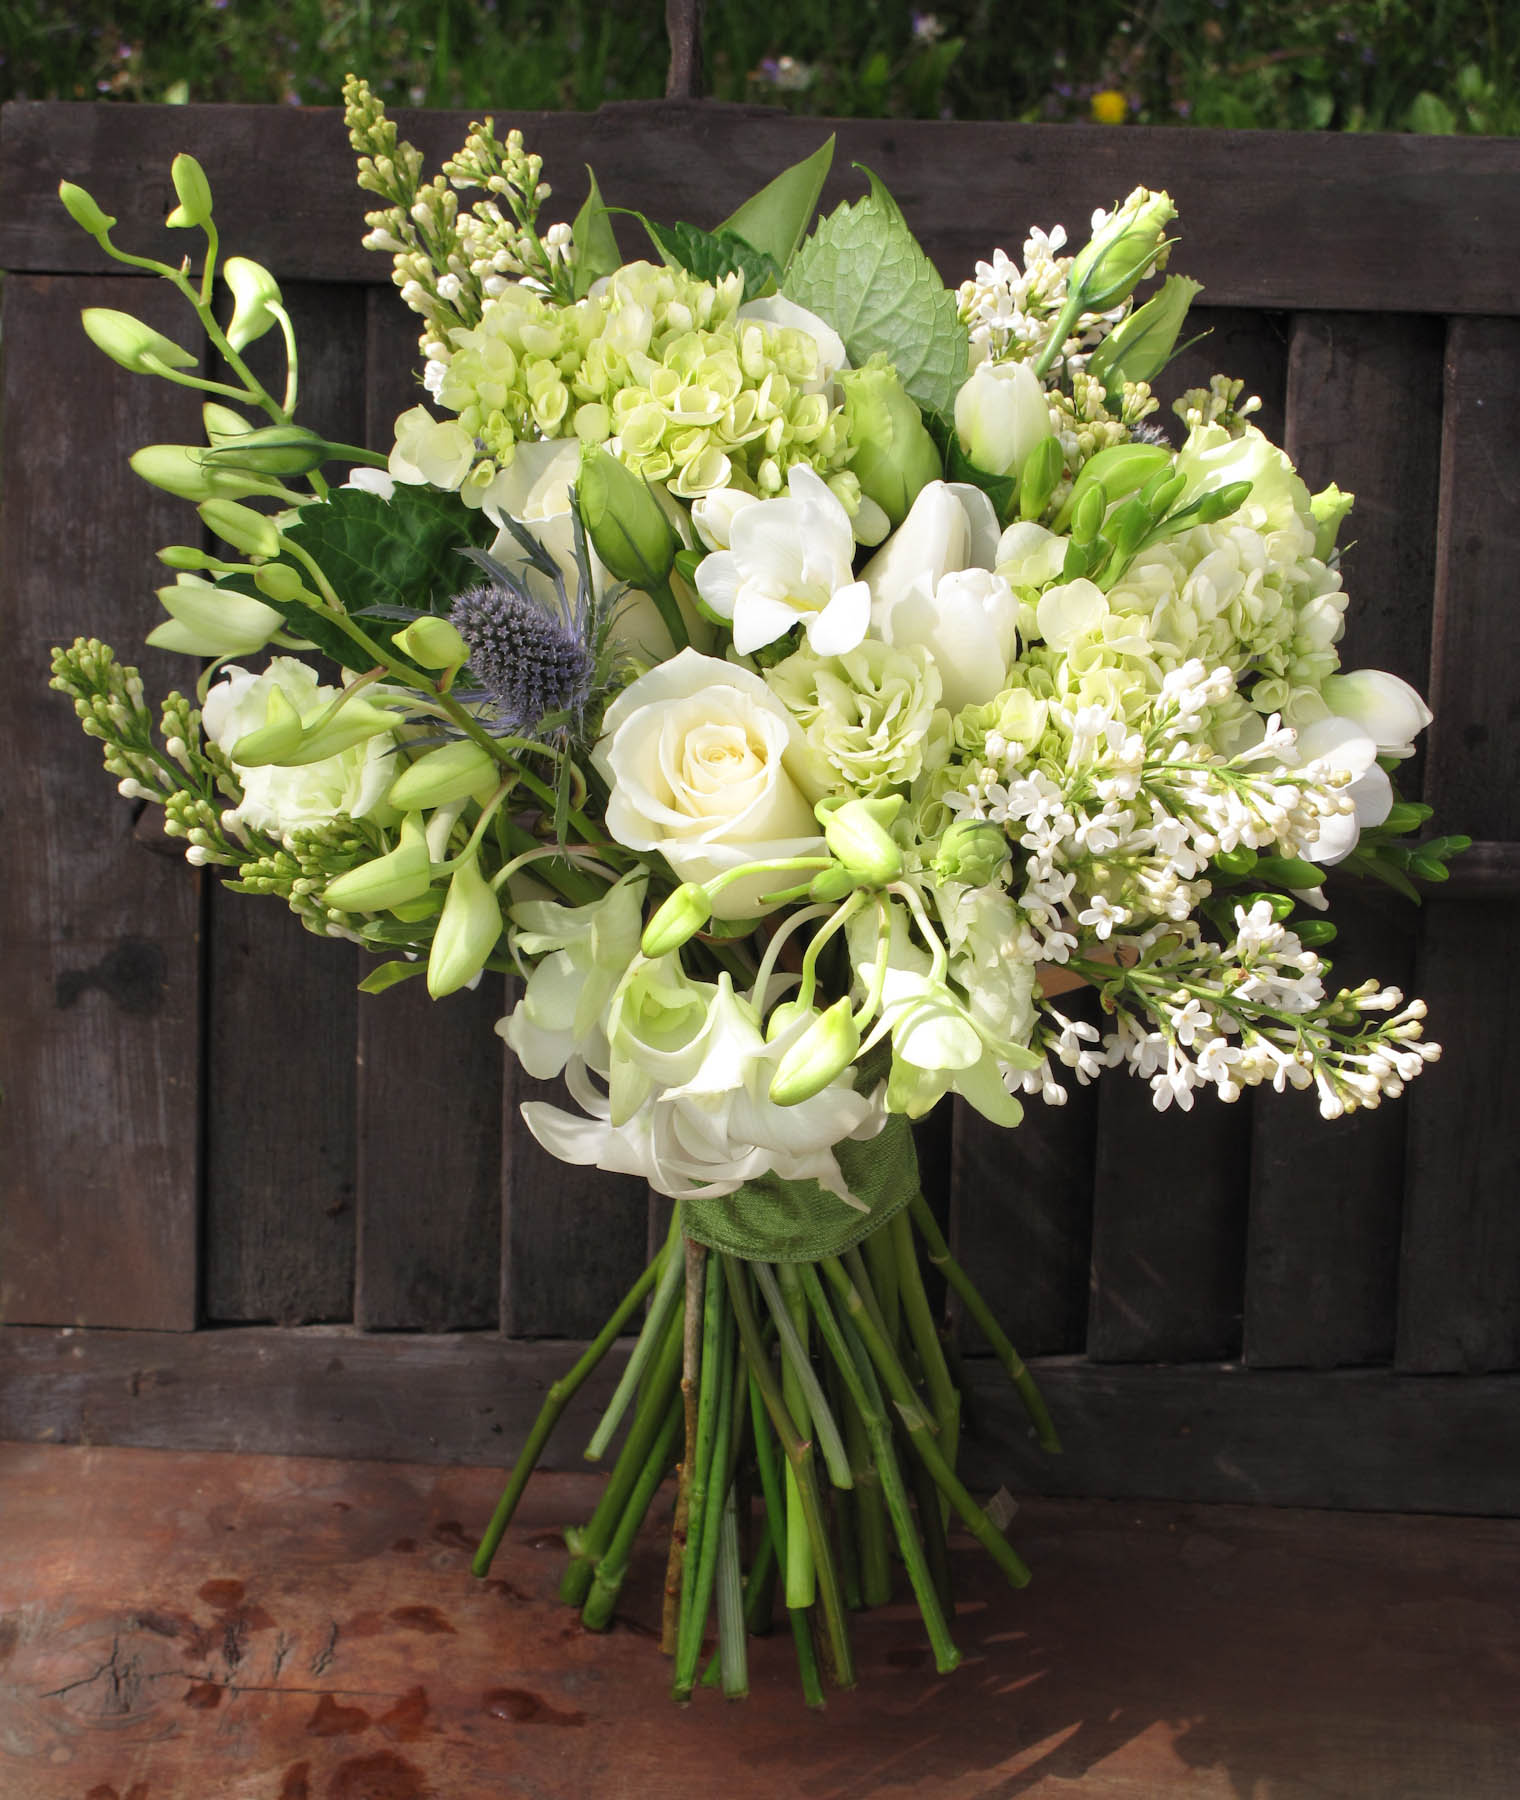 Wedding Flowers White Green : May wedding flowers are blooming floral artistry by